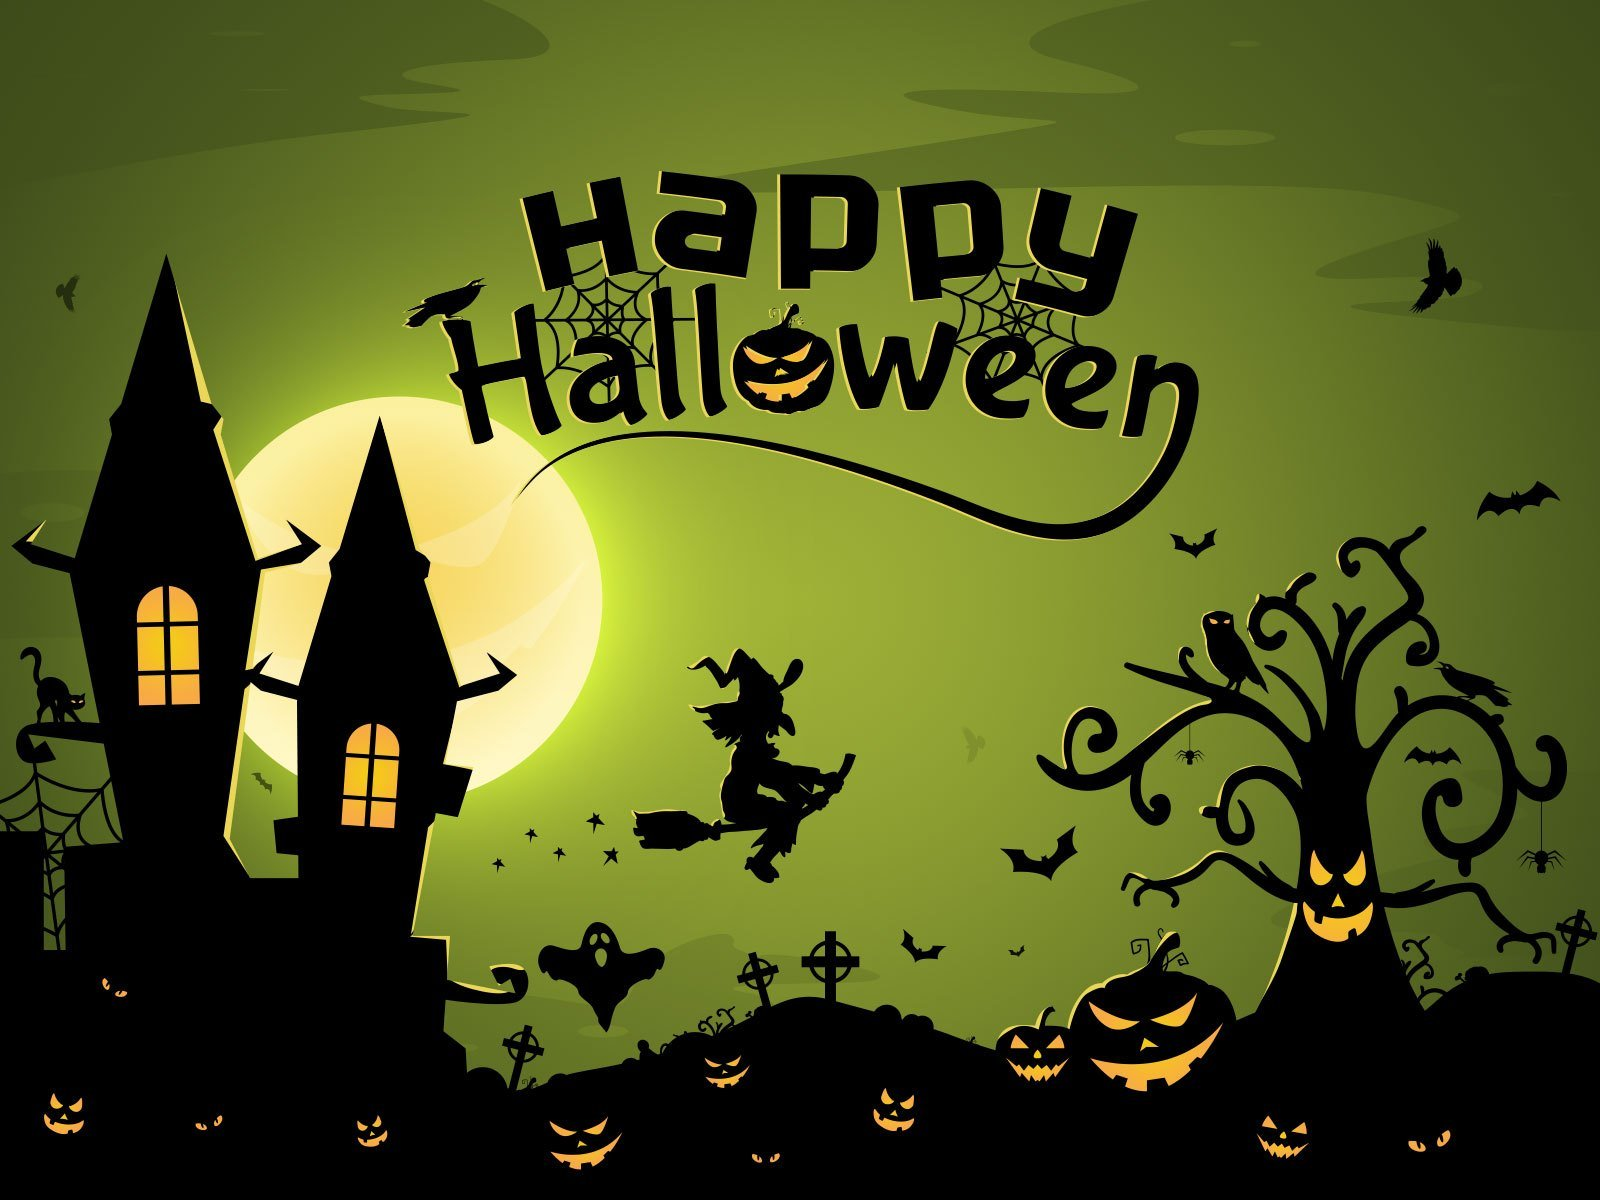 Happy Halloween Scary Night Pics Wallpapers  EntertainmentMesh 1600x1200